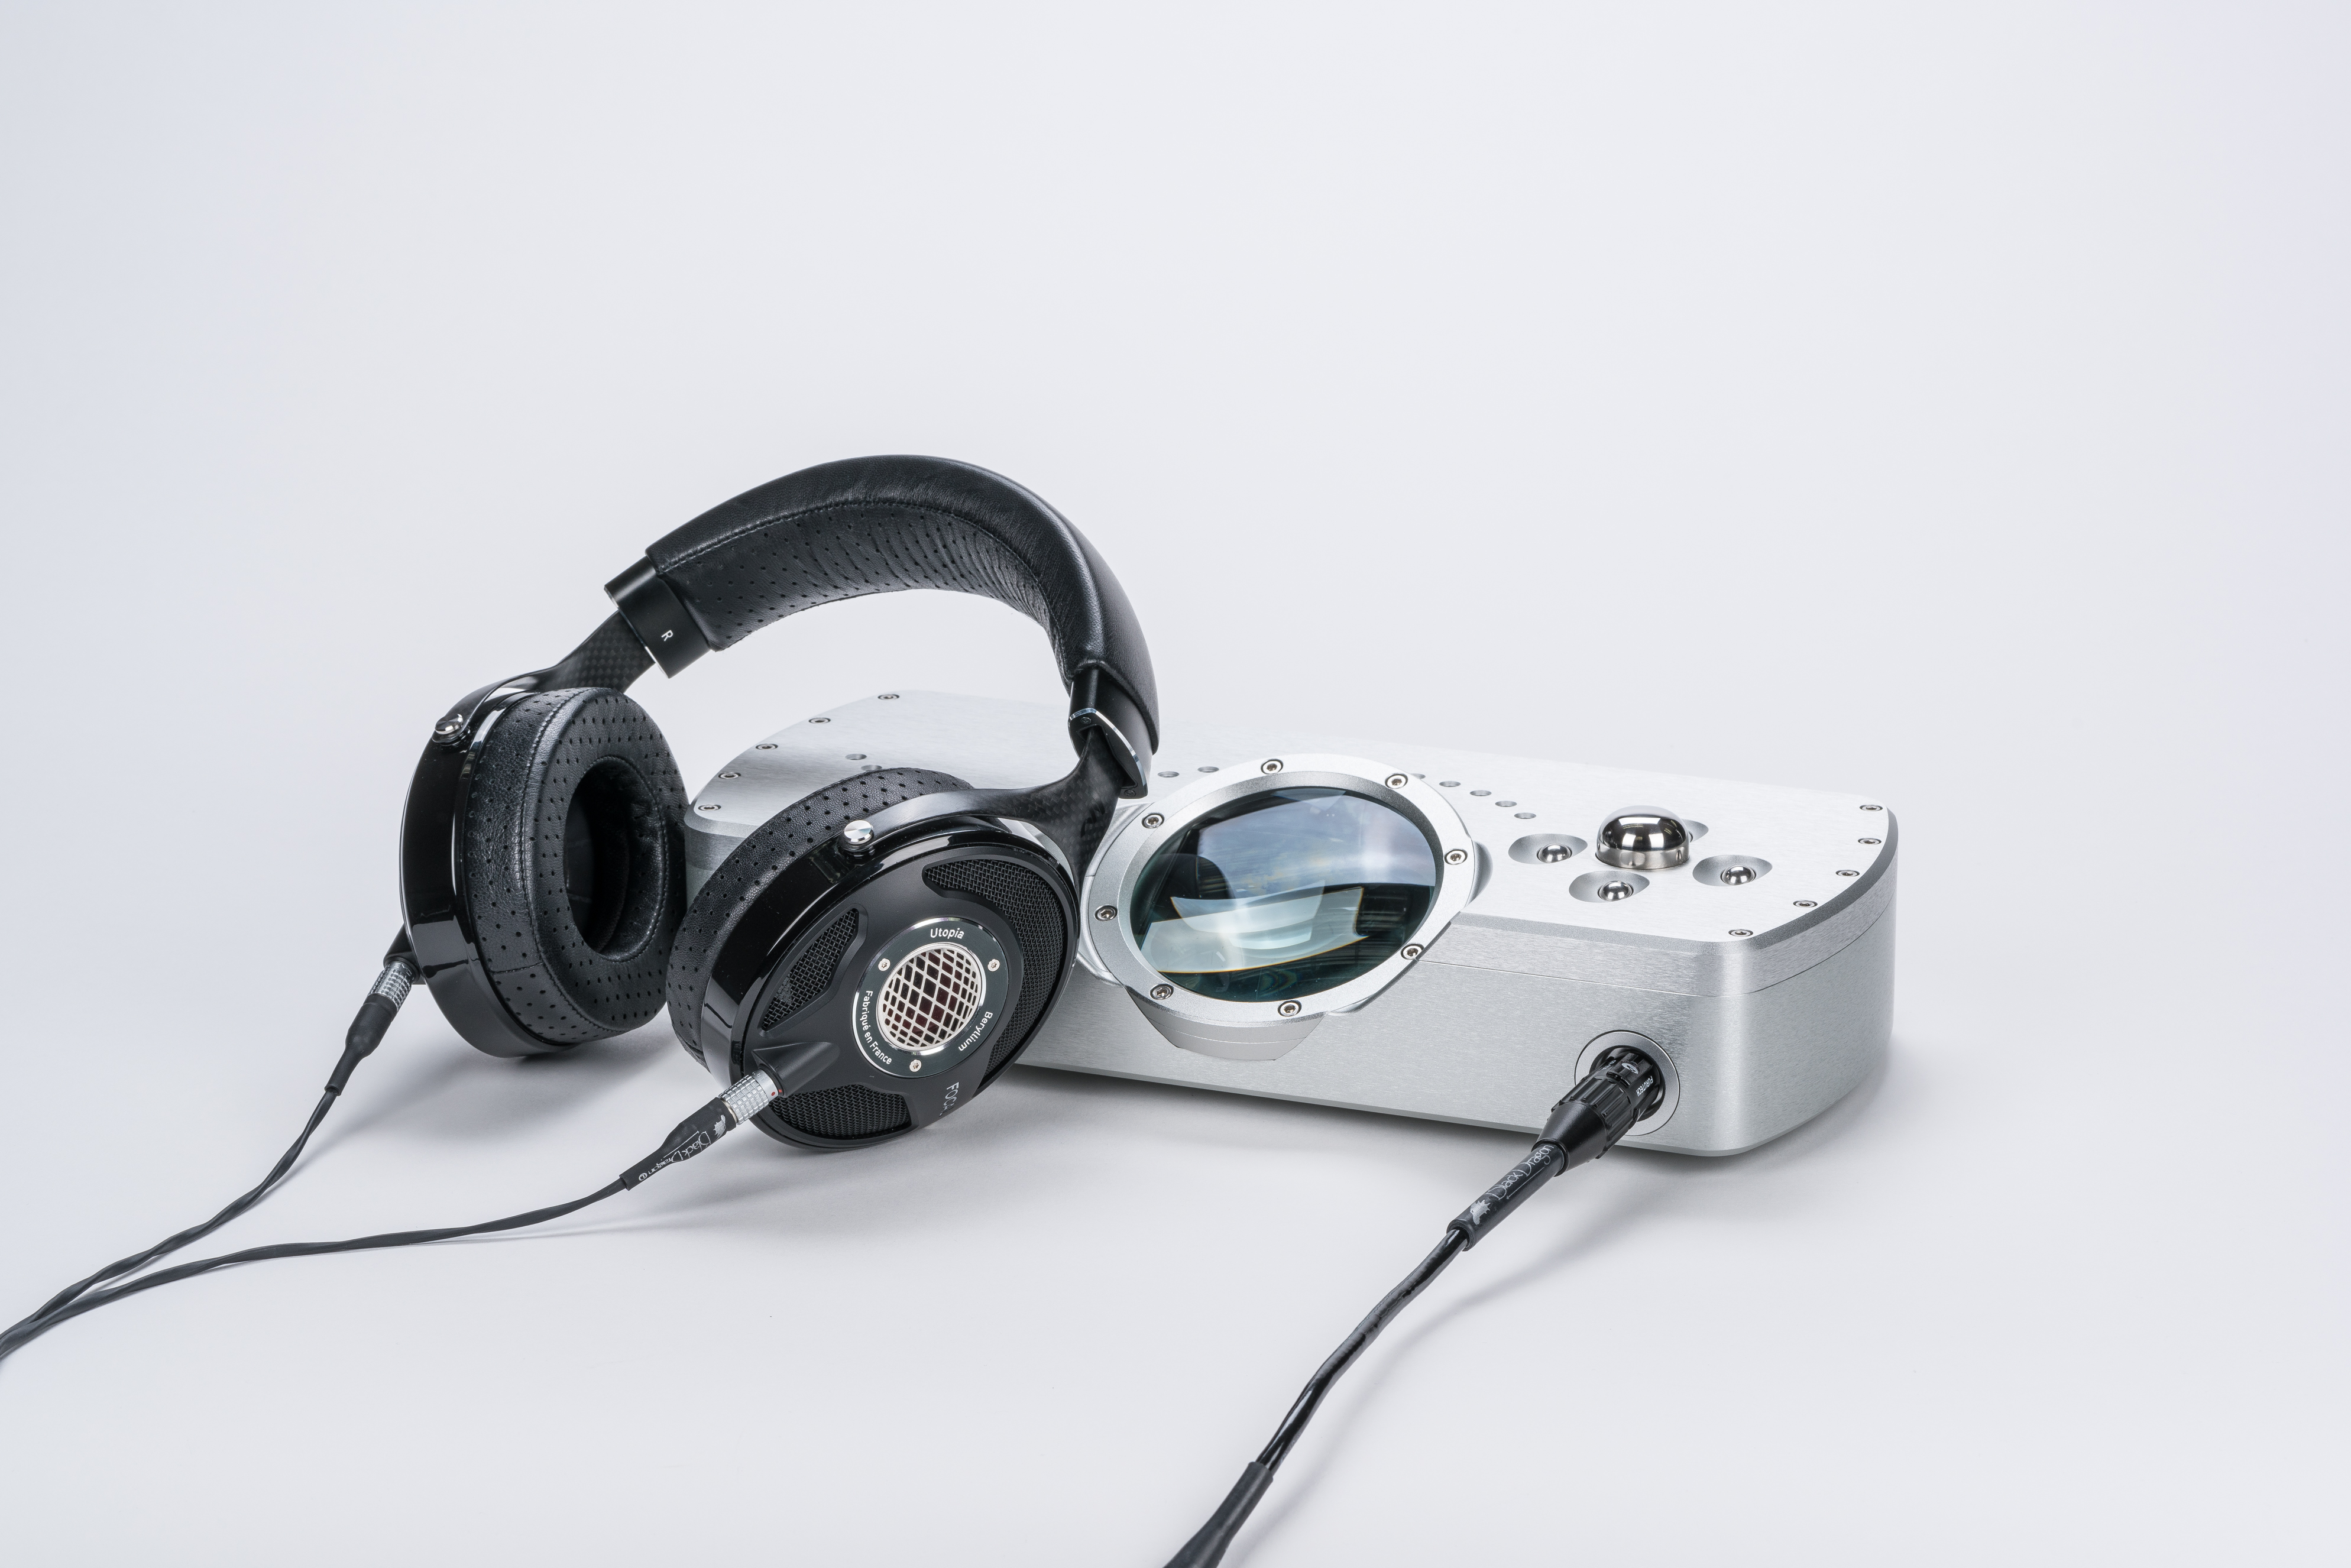 c988317e08c Focal Elear and Utopia Review / Preview With Measurements - Head-Fi ...